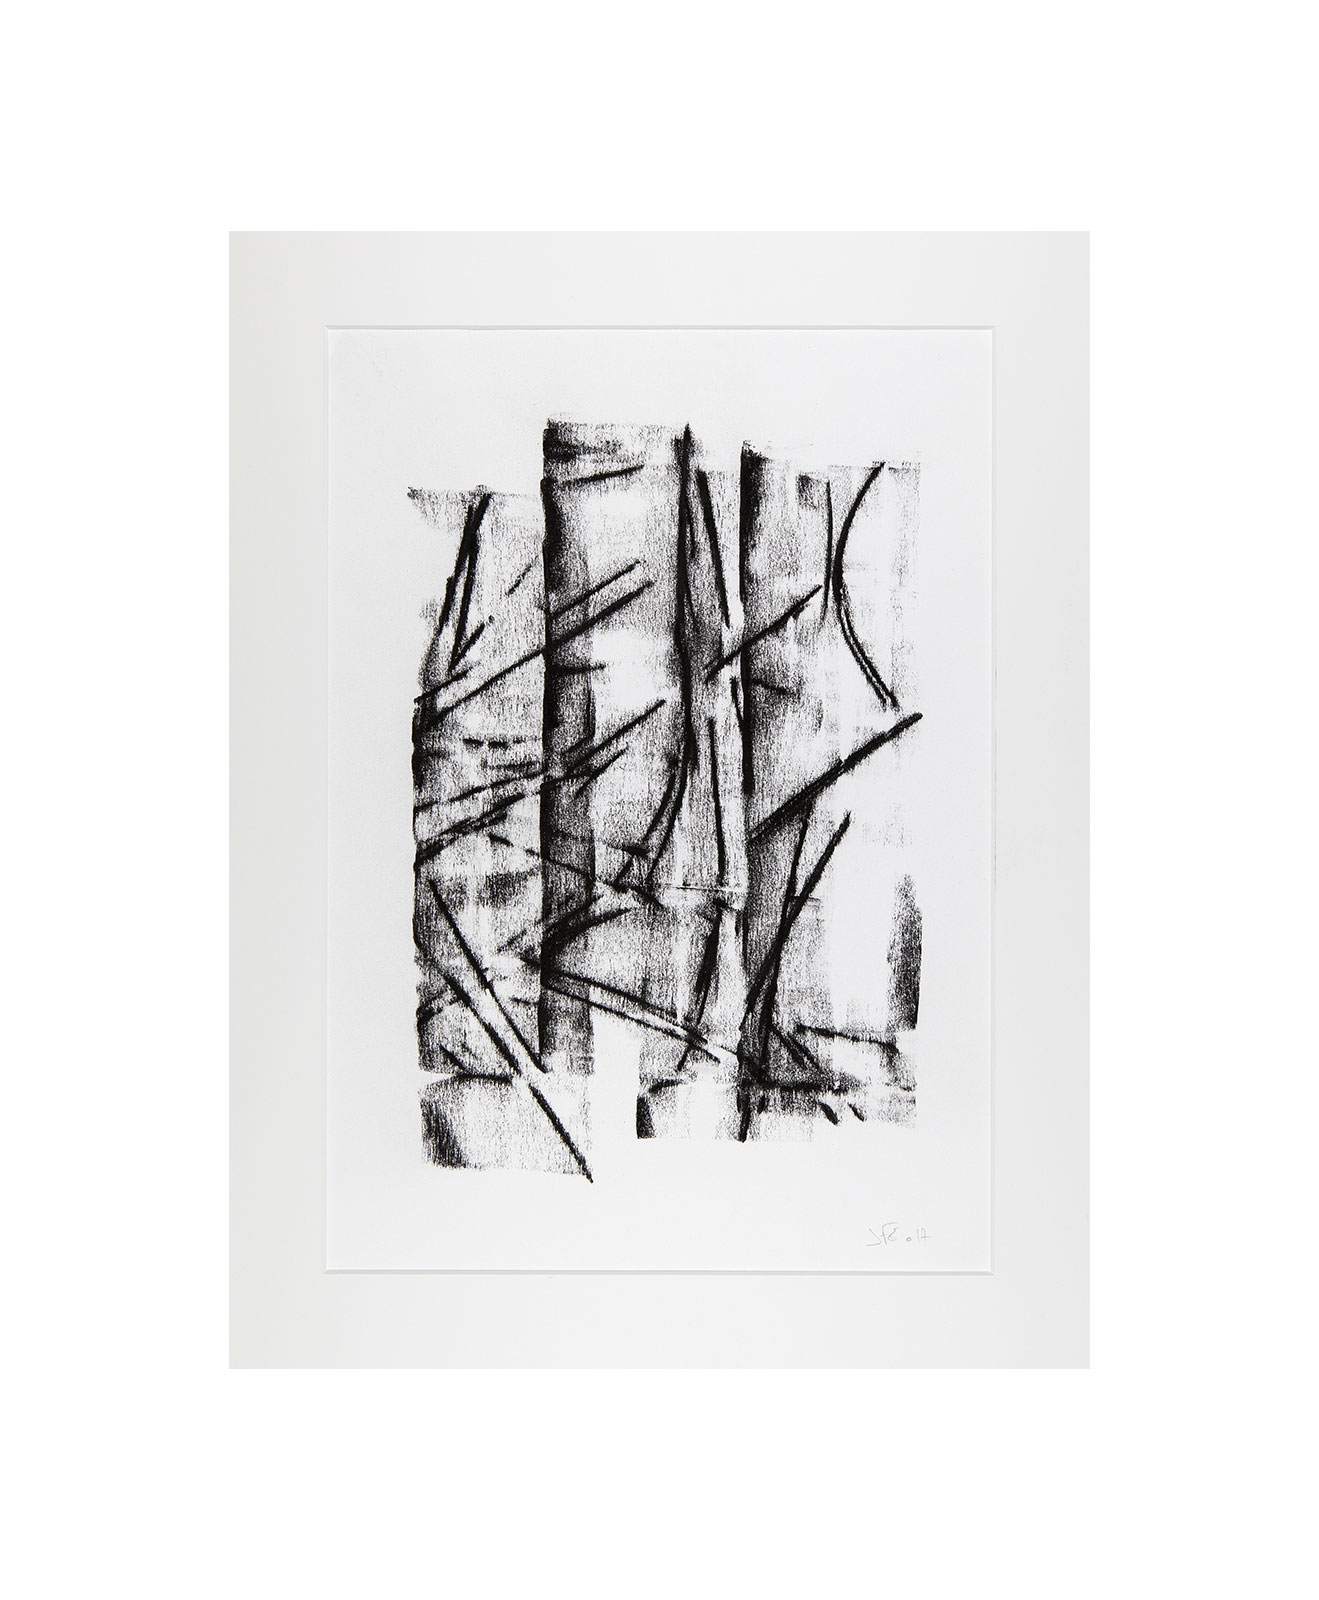 Cha 1.3, Charcoal on paper, black and white artwork, drawing, jf escande, contemporary art